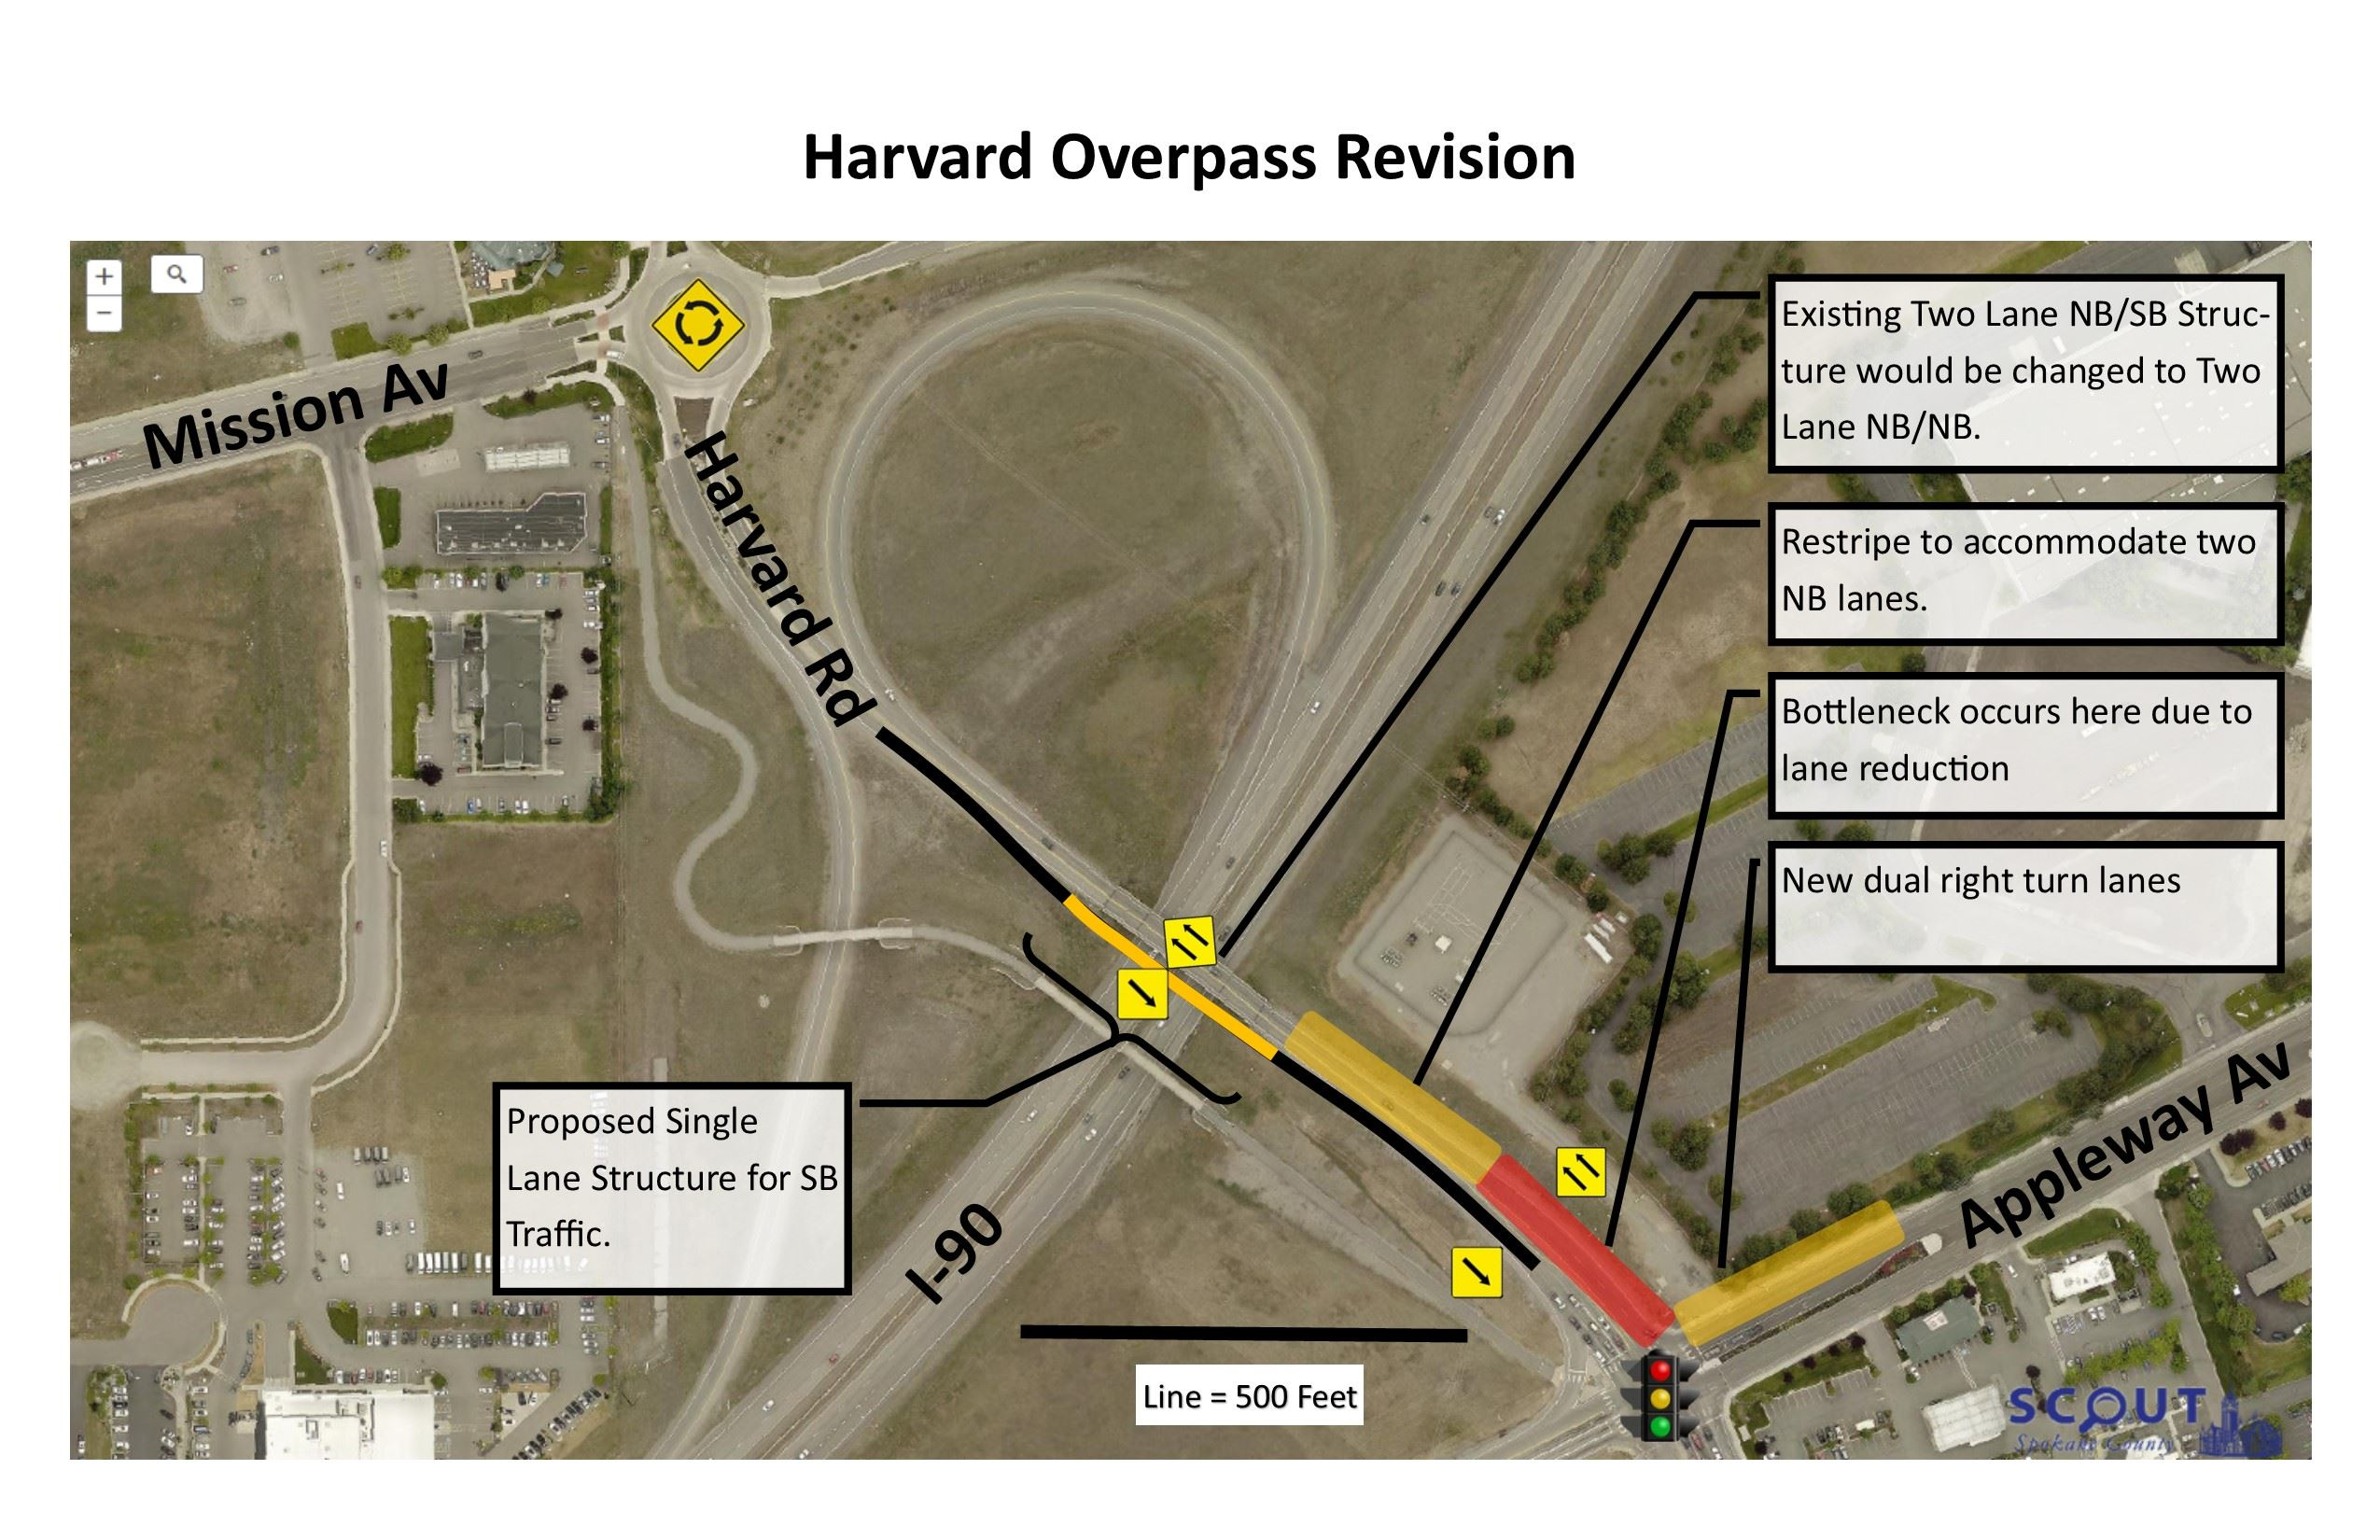 Harvard Overpass Revision